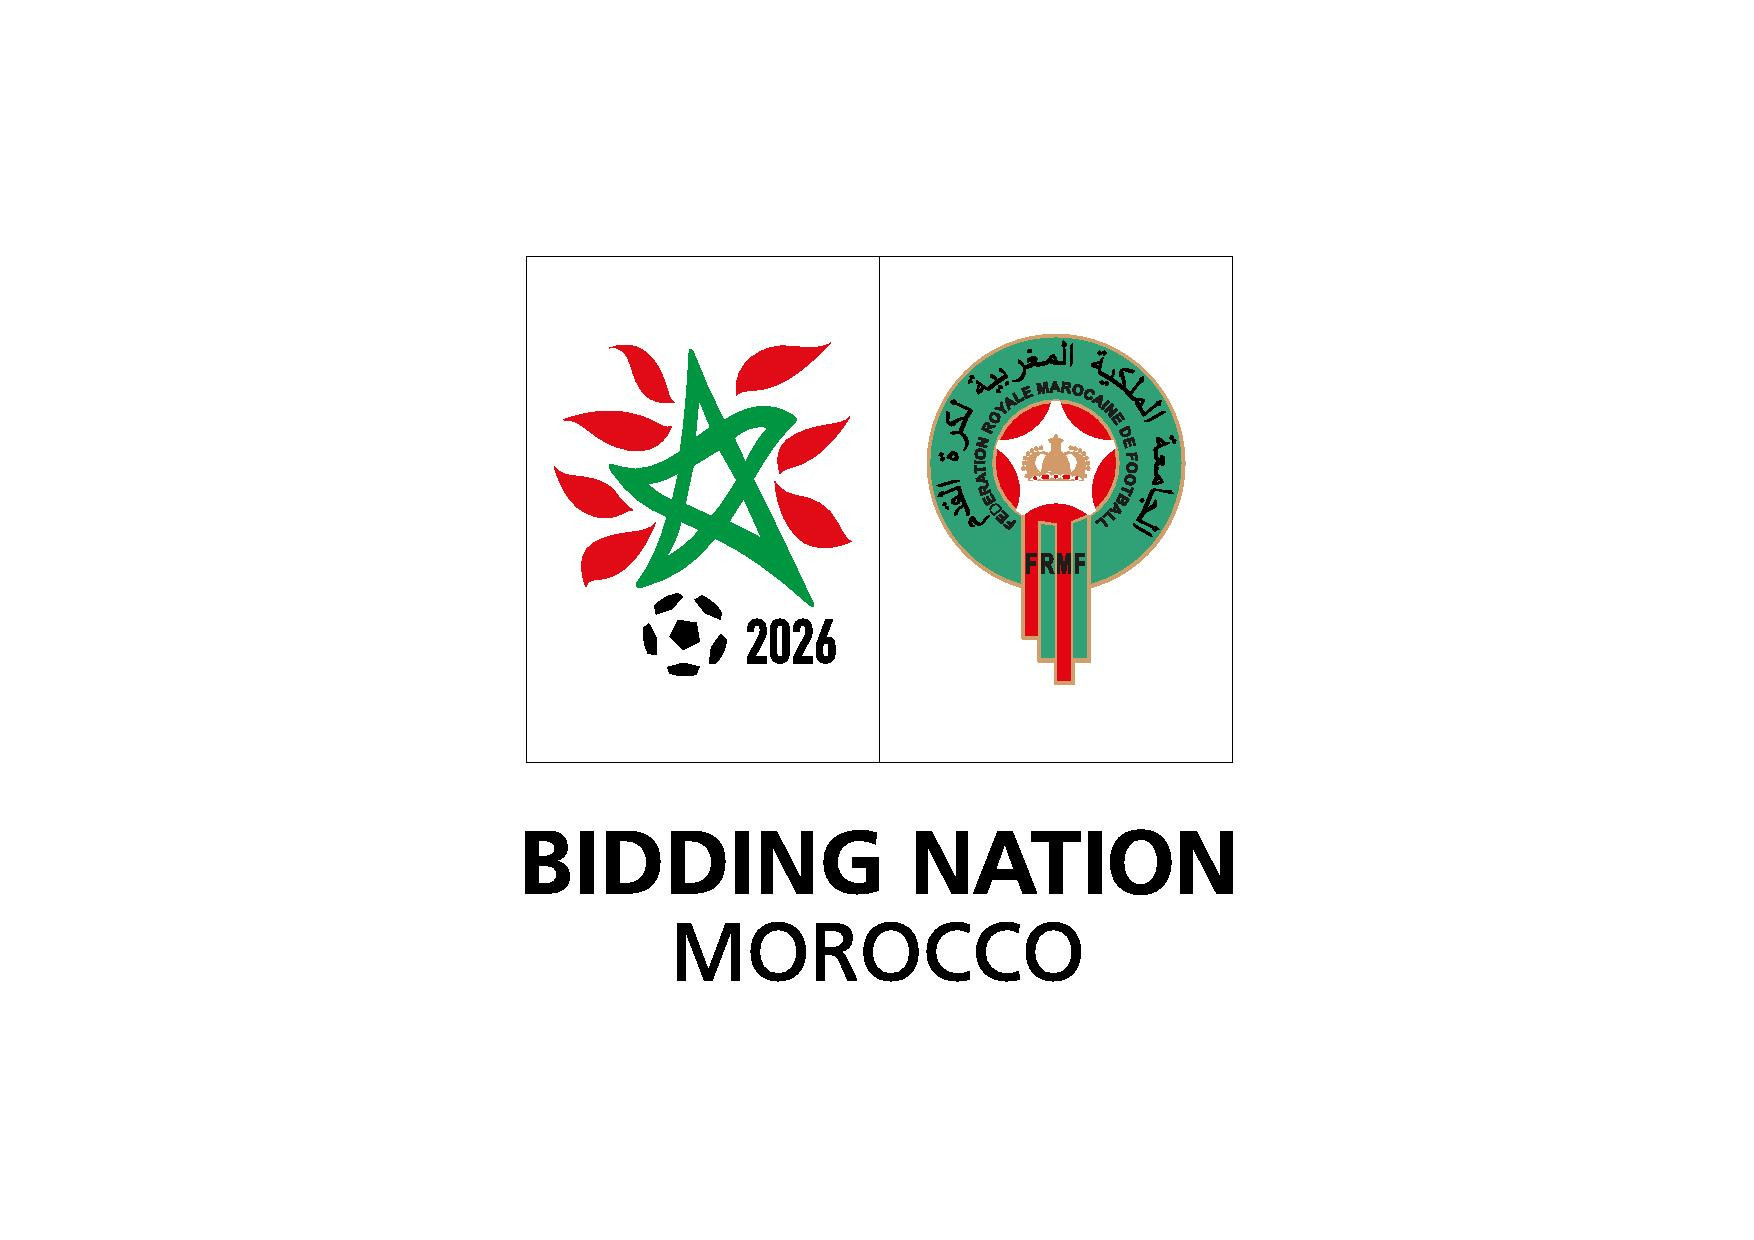 Morocco 2026 unveil bid team and logo with just over four months until FIFA select World Cup host